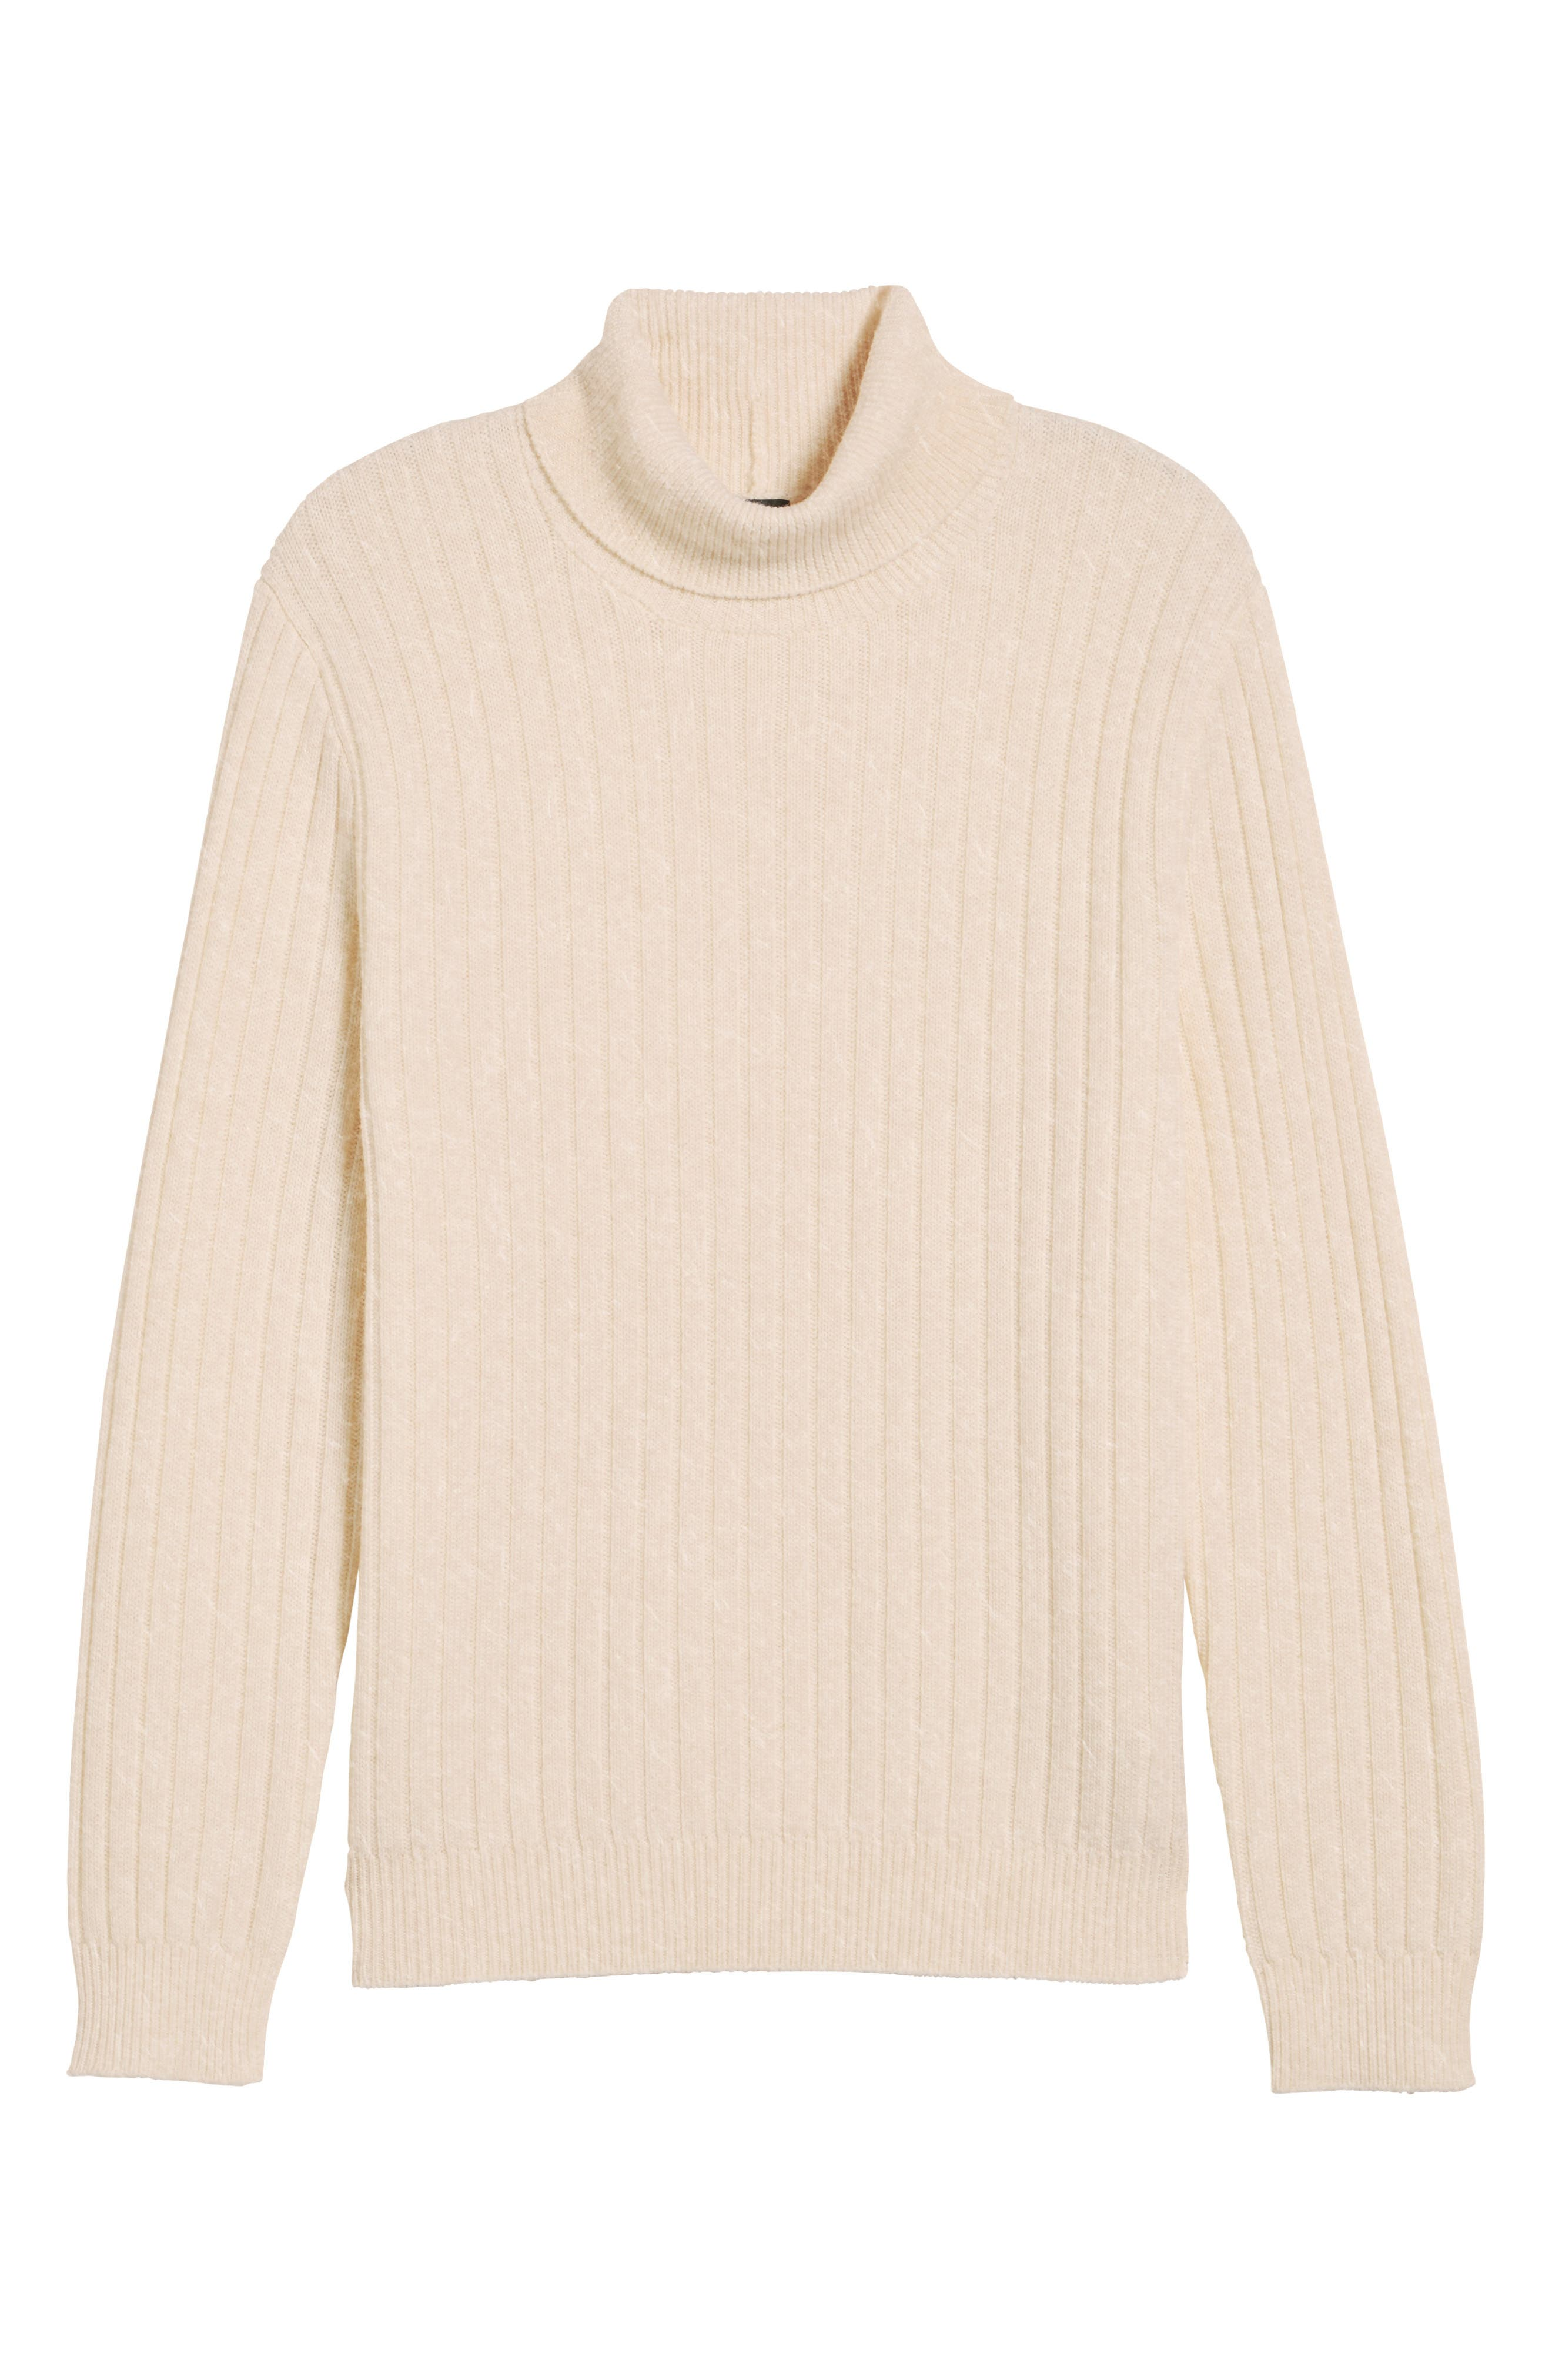 Ribbed Turtleneck Wool Sweater,                             Alternate thumbnail 7, color,                             Cream